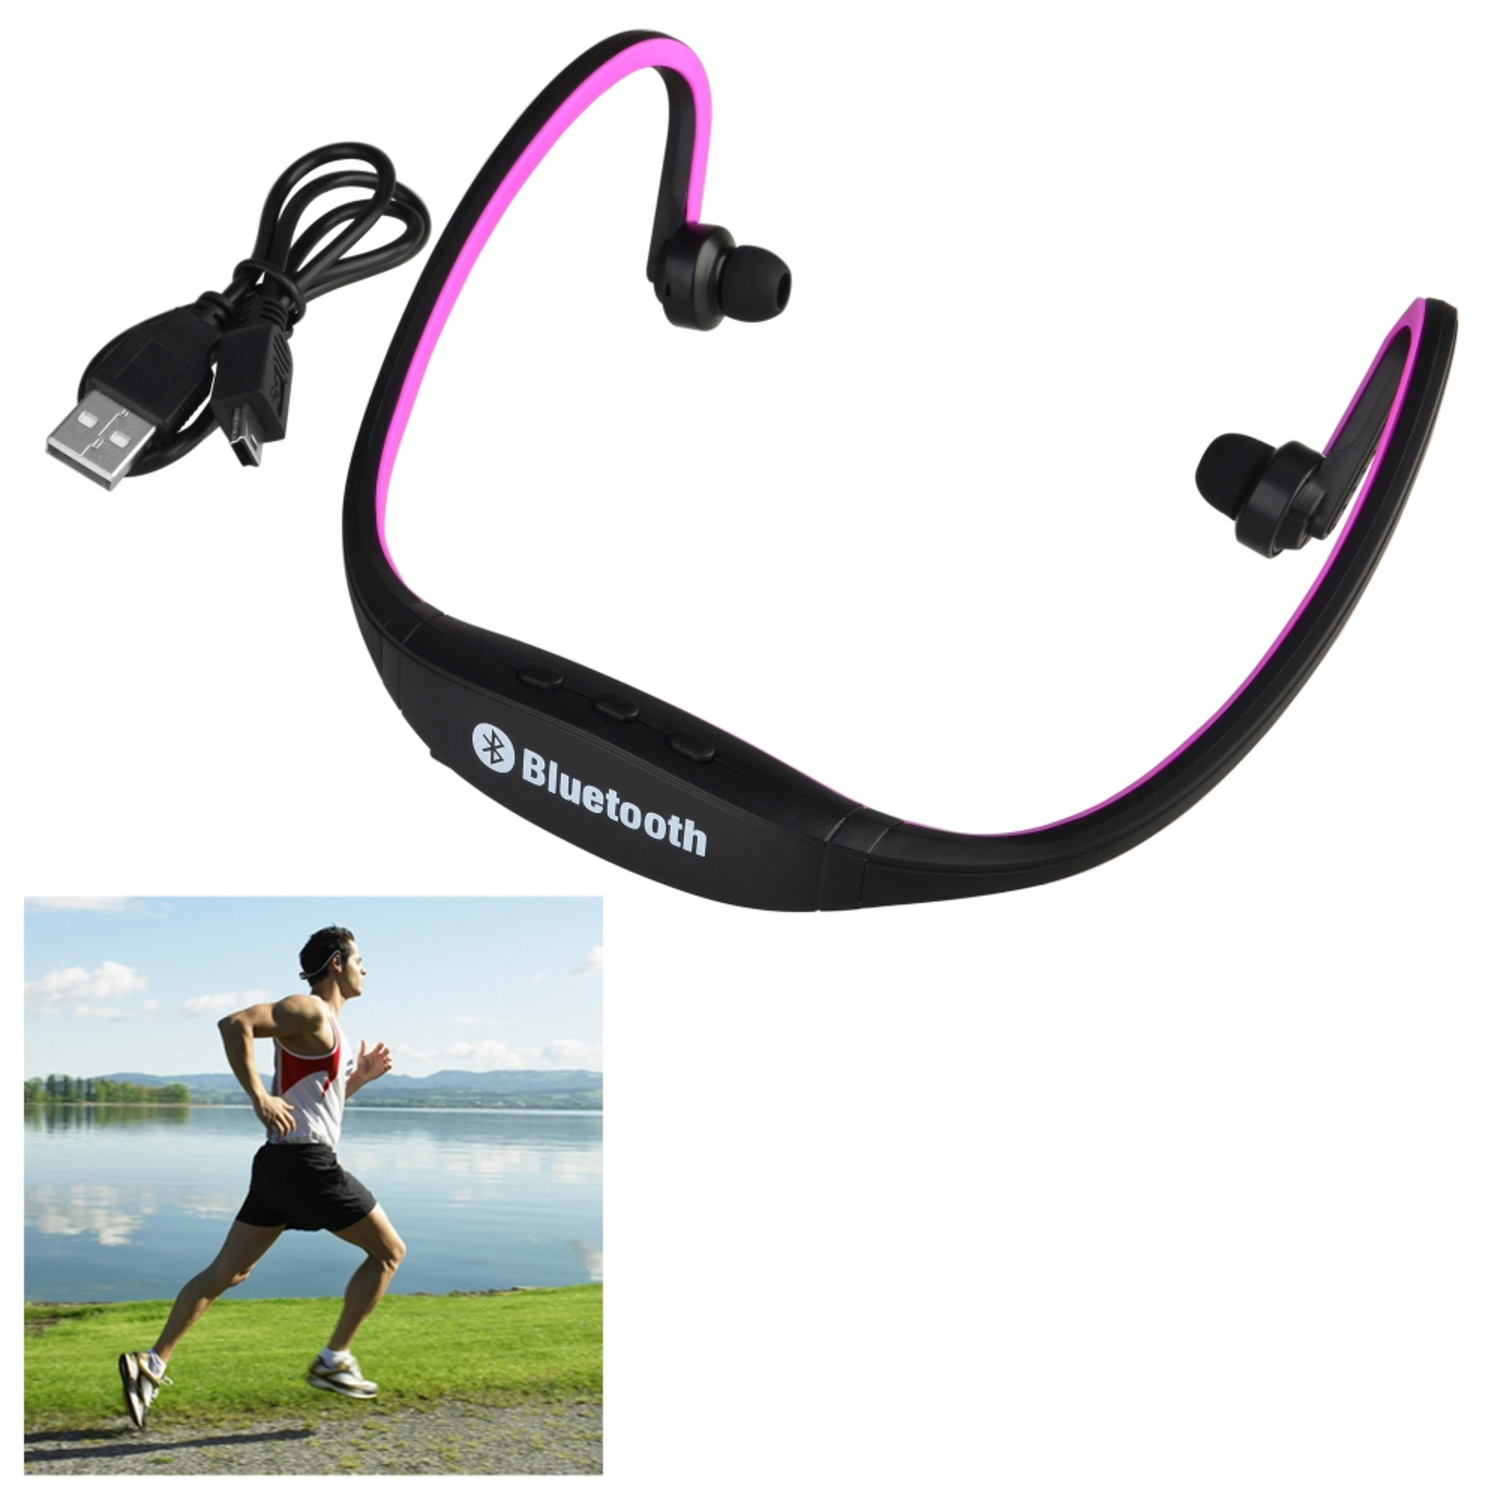 Insten Hot Pink Wireless Bluetooth 3.0 Sports Stereo Earbuds Earphone Headset Headphone for iPhone 7 Plus 6s 6 SE 5s Android Samsung LG HTC Cell Phone Running Workout Gym Exercise Music MP3 Player